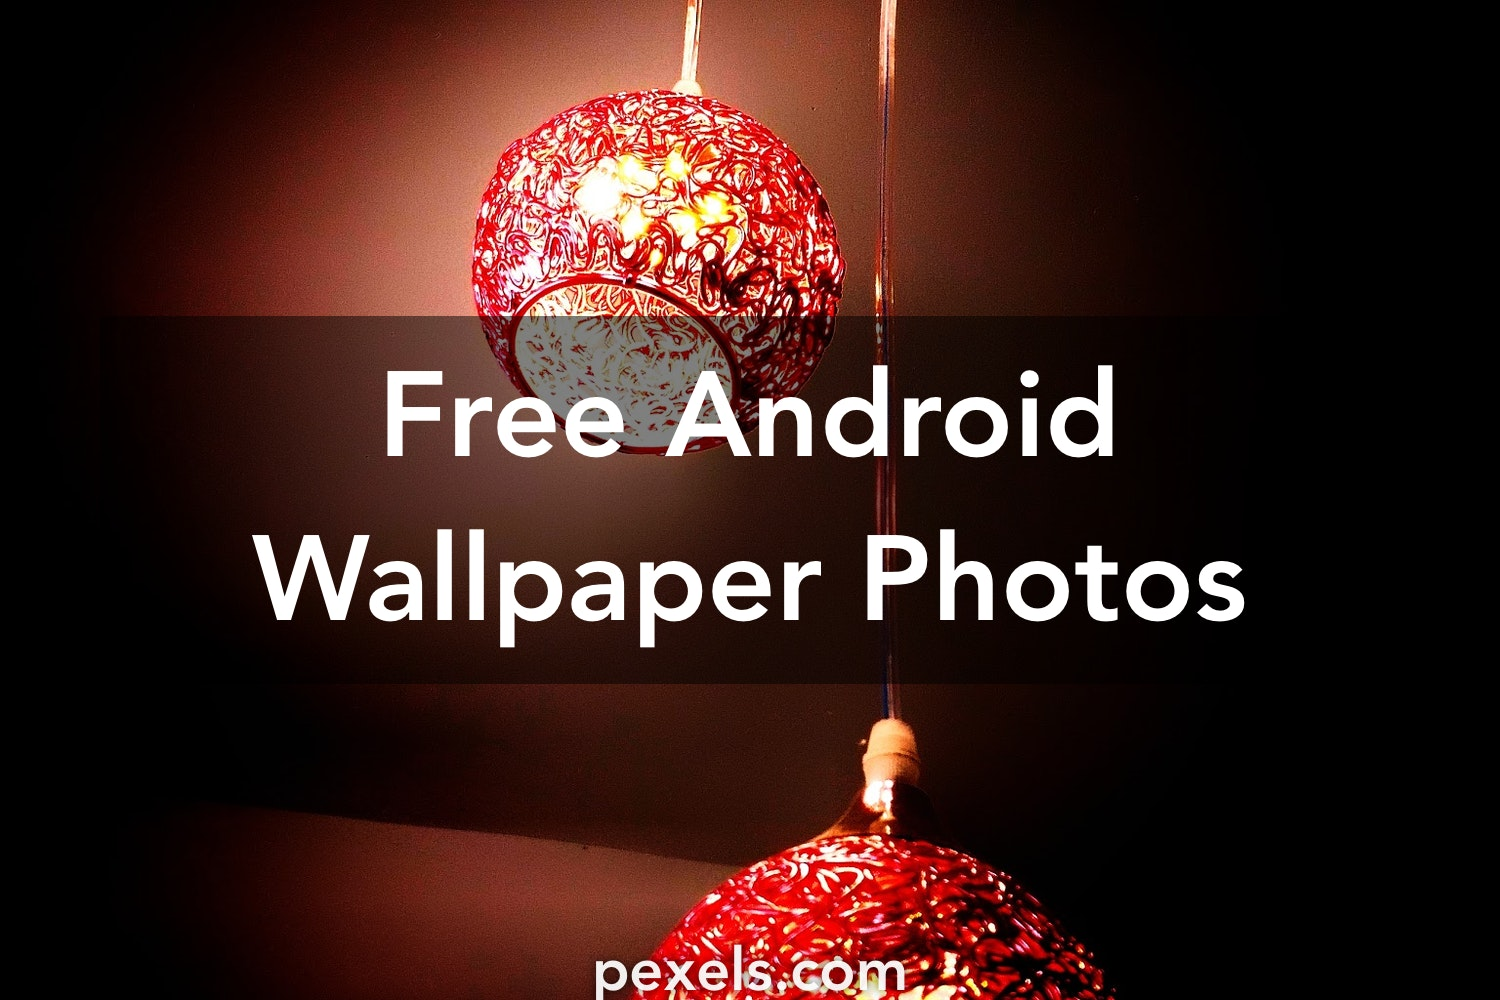 Free Android Wallpaper Gallery: Free Stock Photos Of Android Wallpaper · Pexels